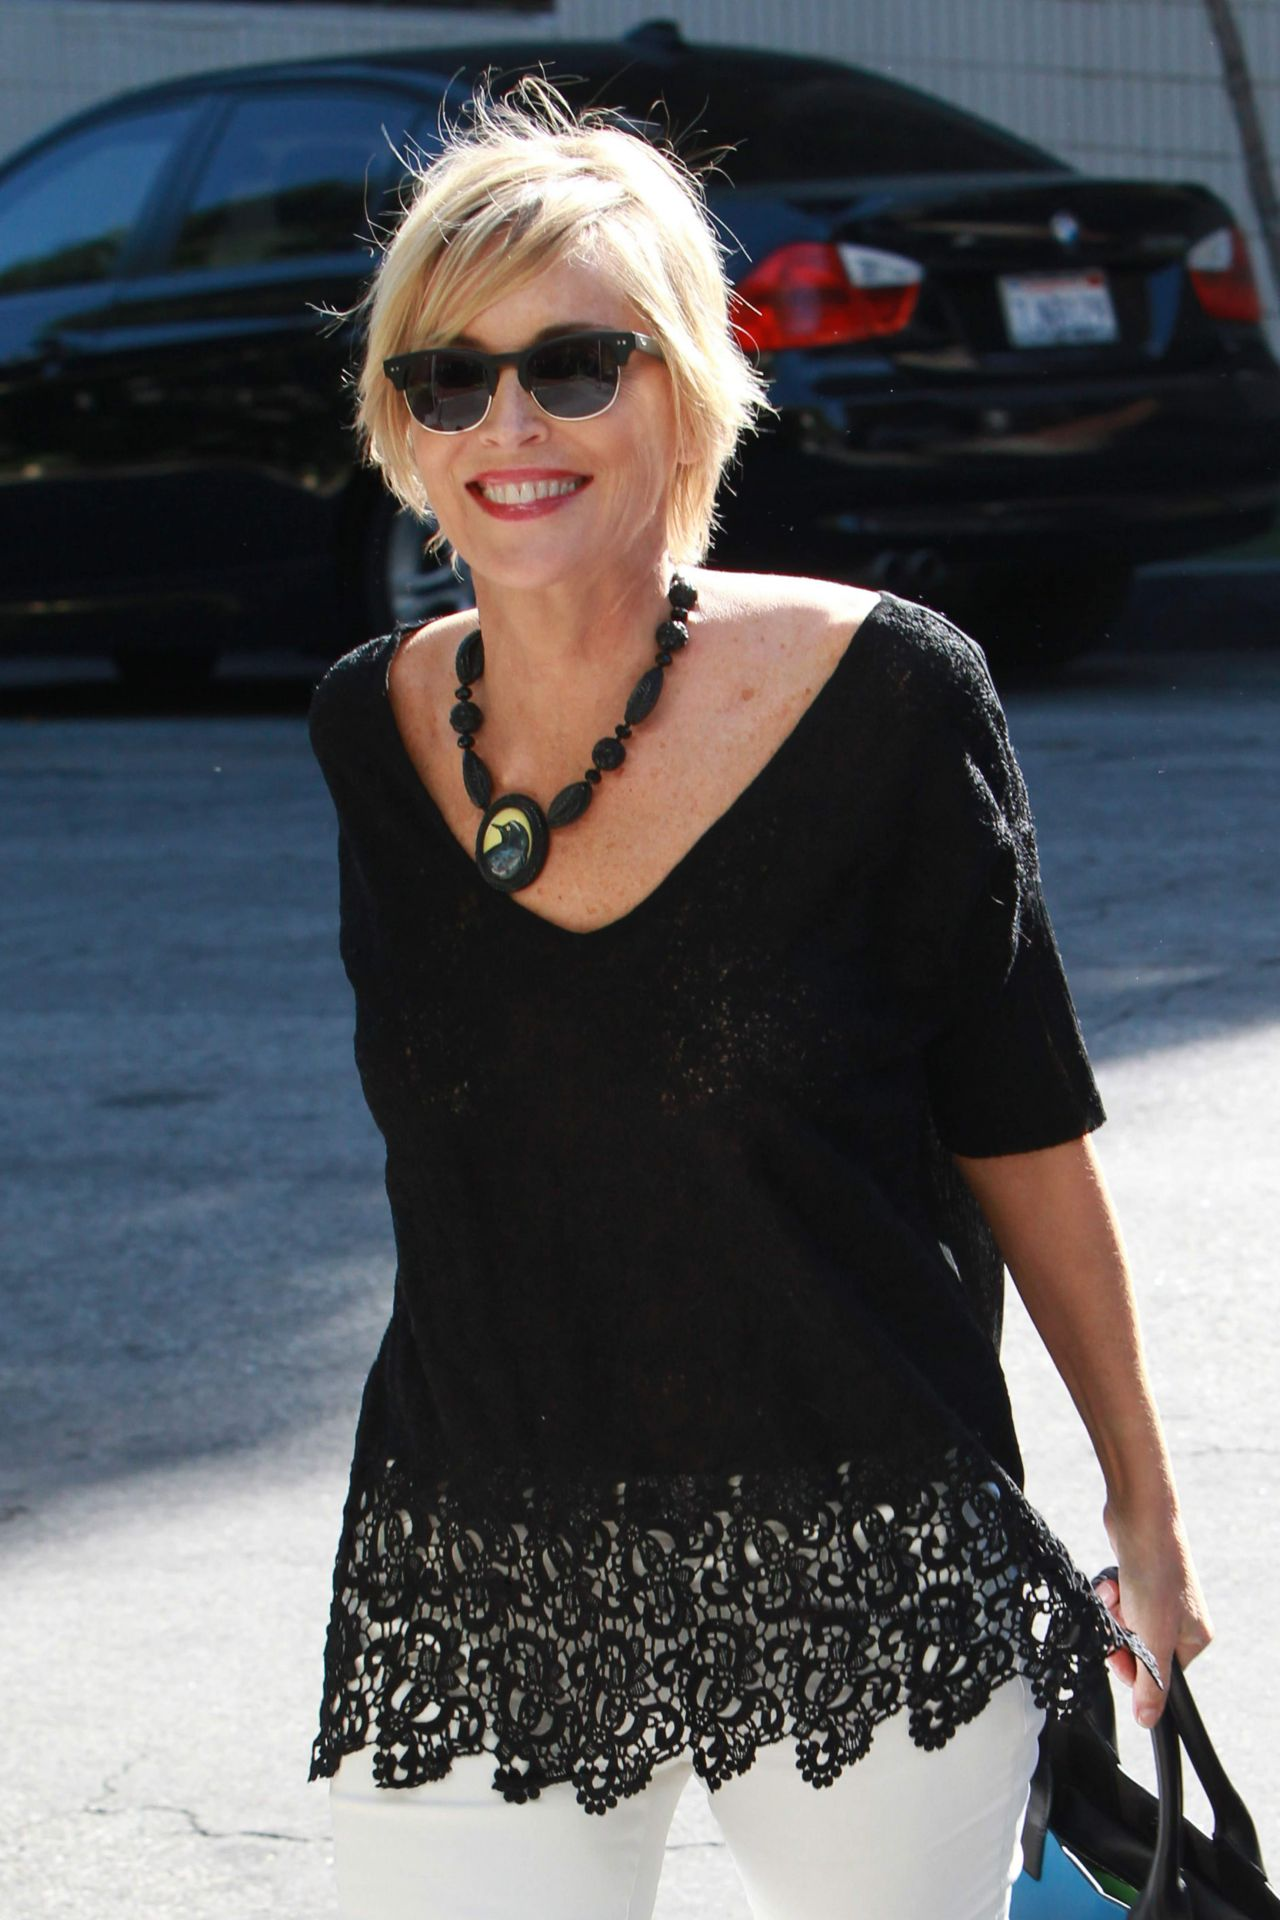 Sharon Stone  Arrives at the Sunset Marquis Hotel in Hollywood  April 2015